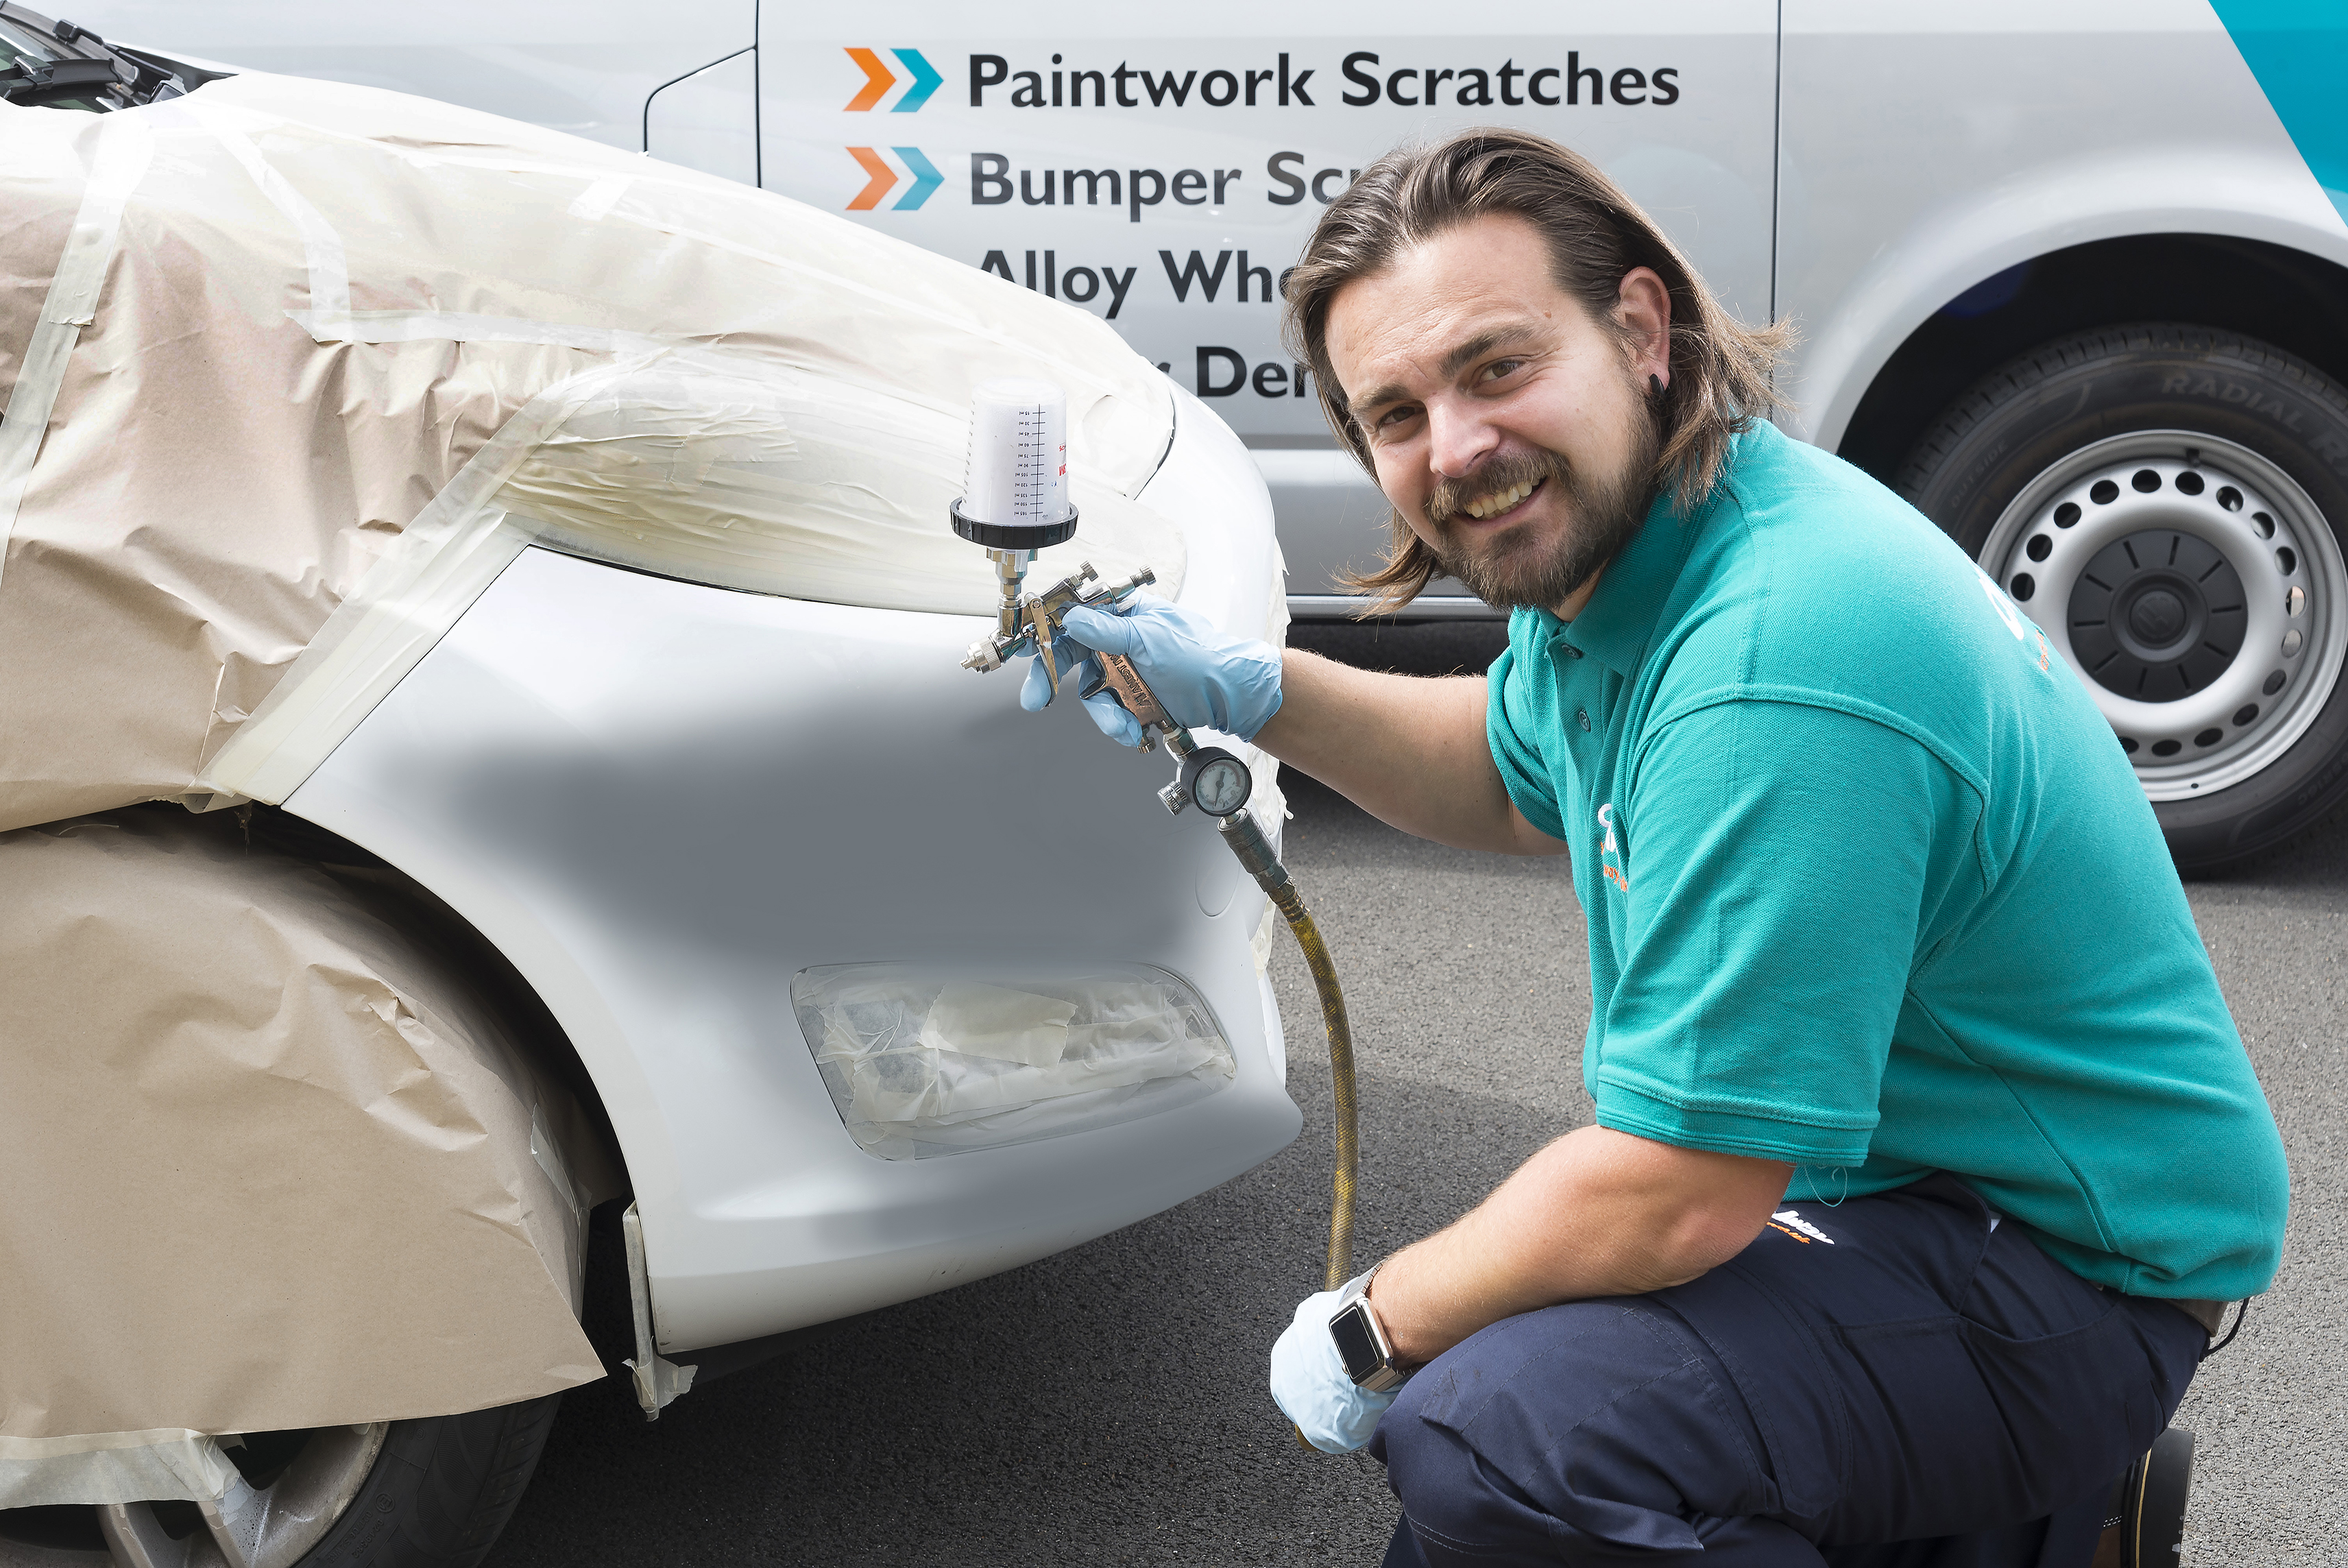 ChipsAway Franchisee Spraying Car